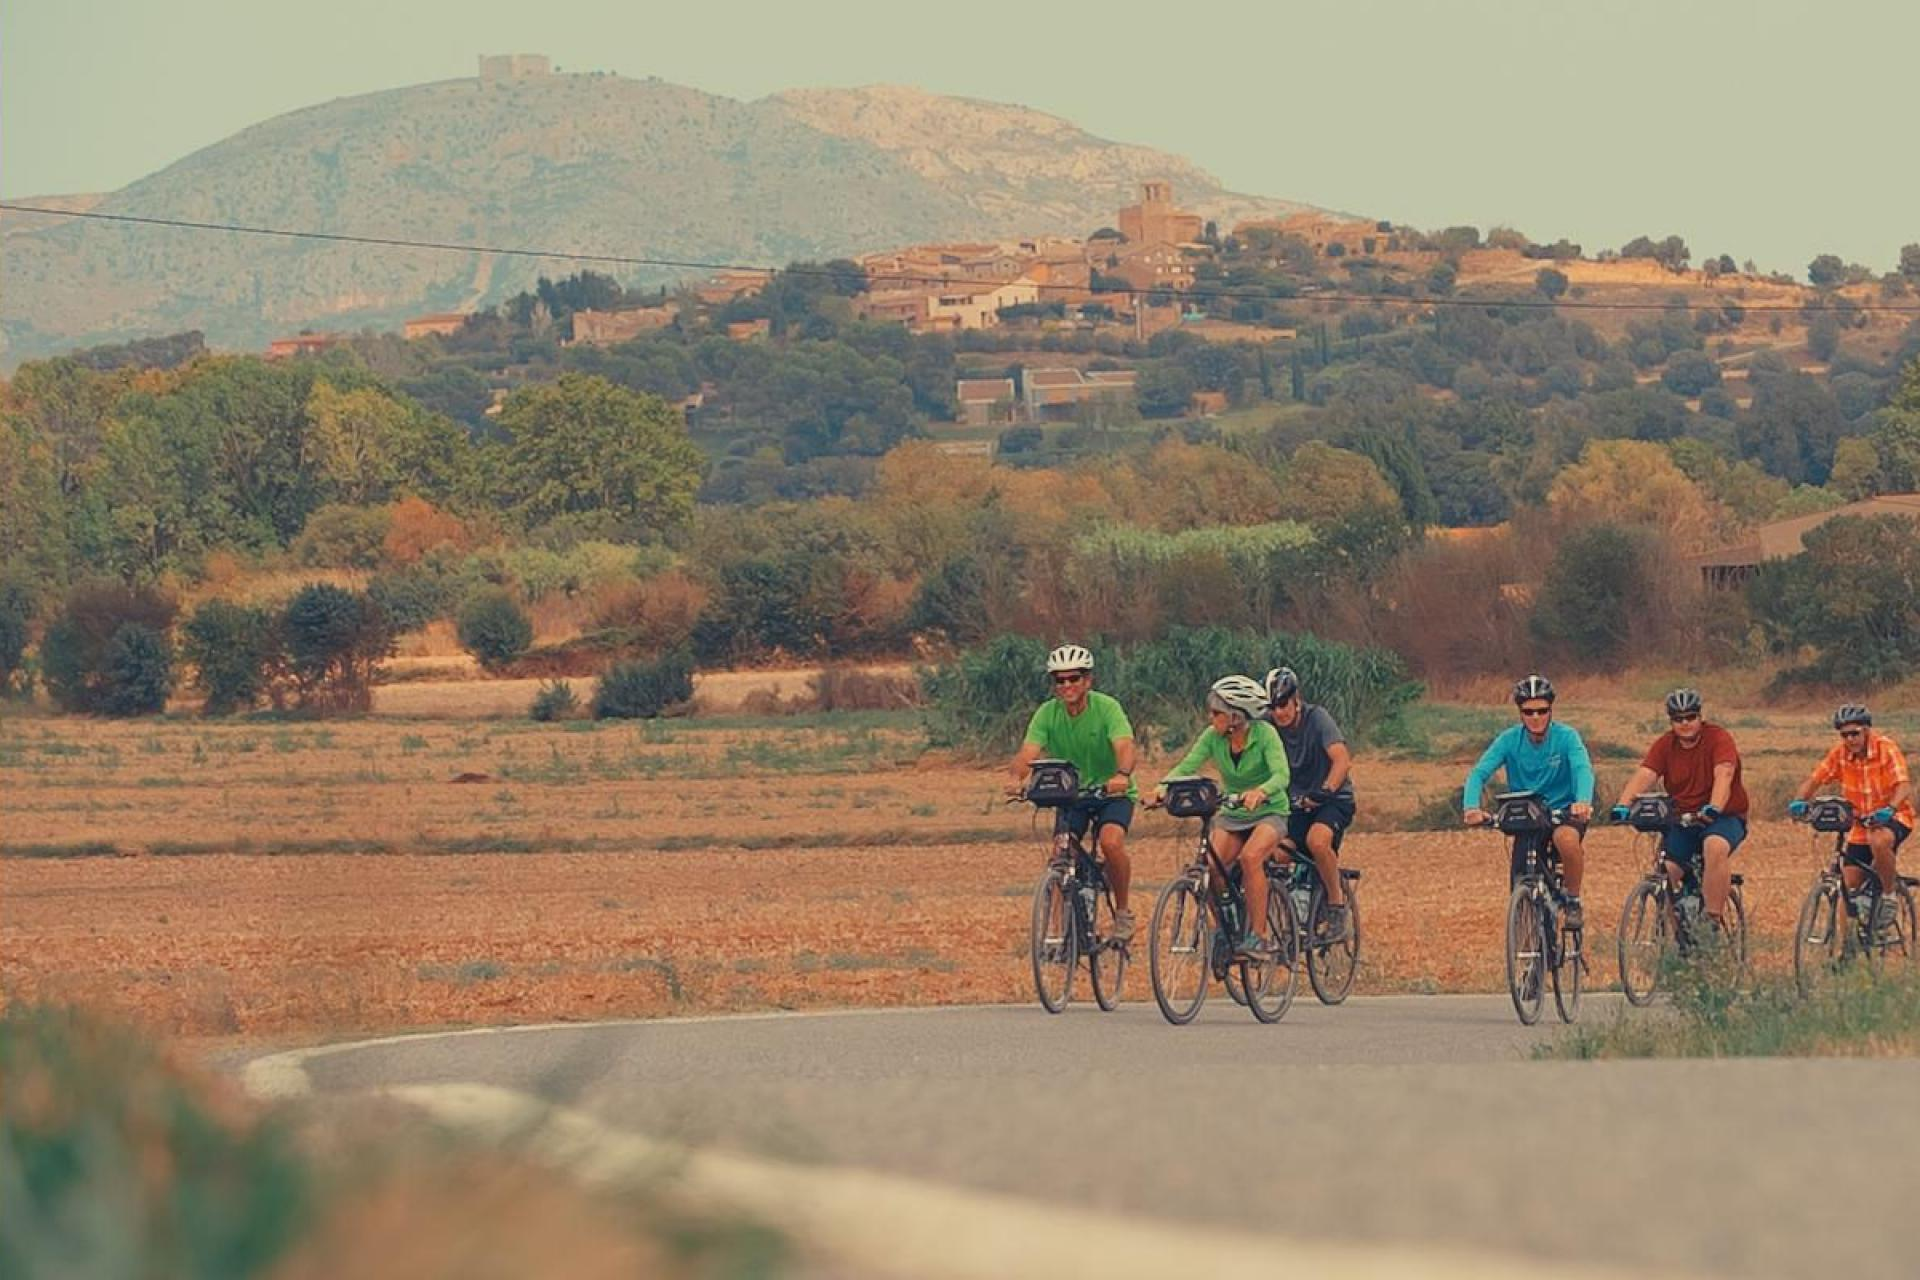 Cycling in Catalonia with mountains in the distance